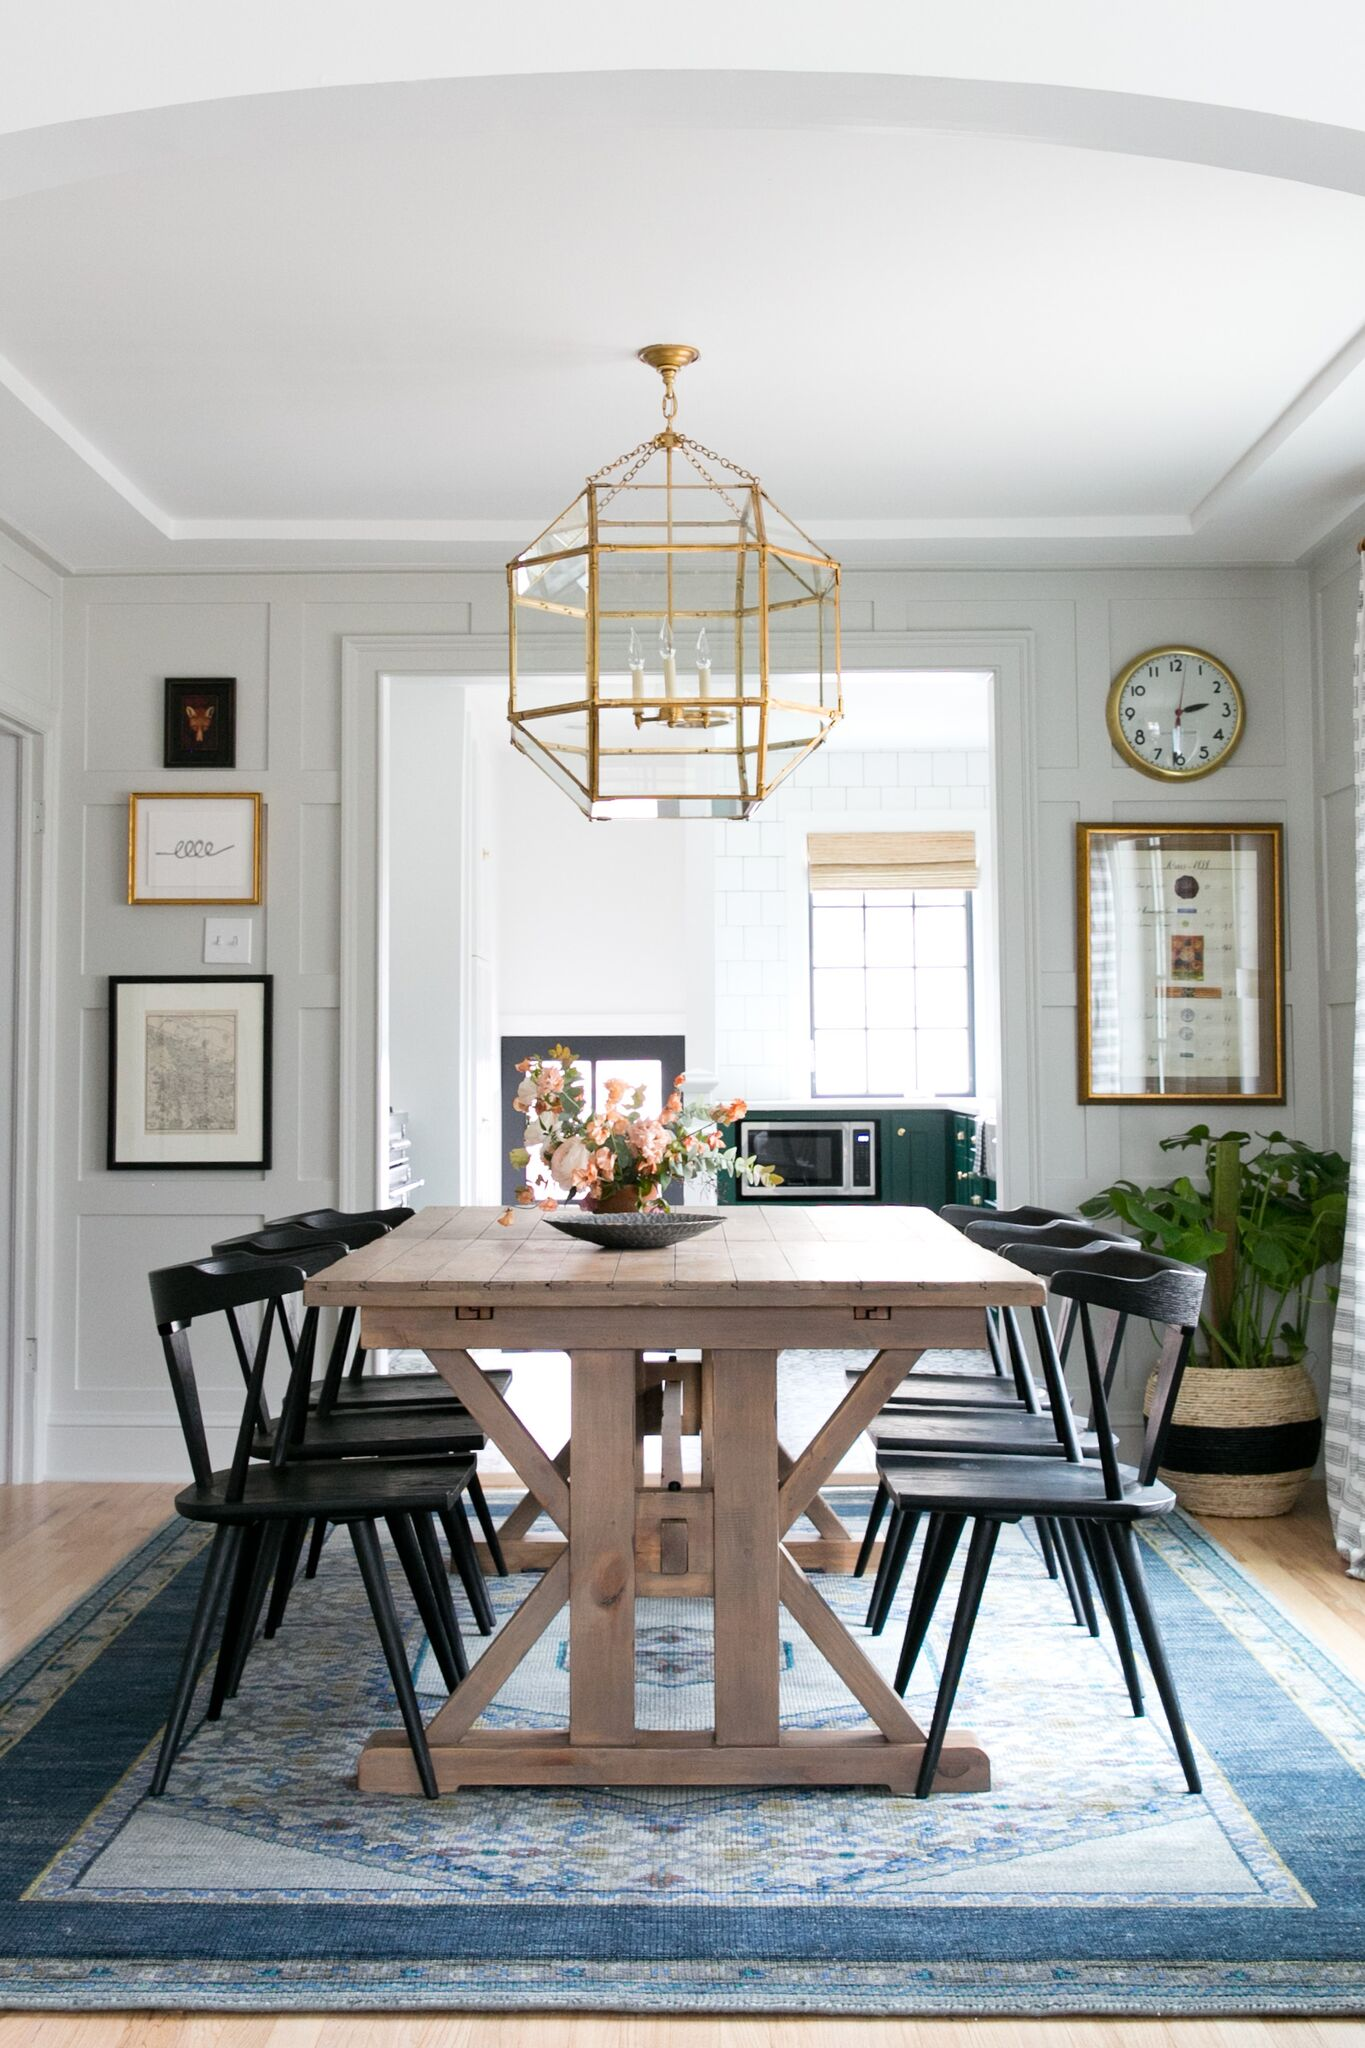 This Modern Farmhouse Dining Room By Studio Mcgee Gets